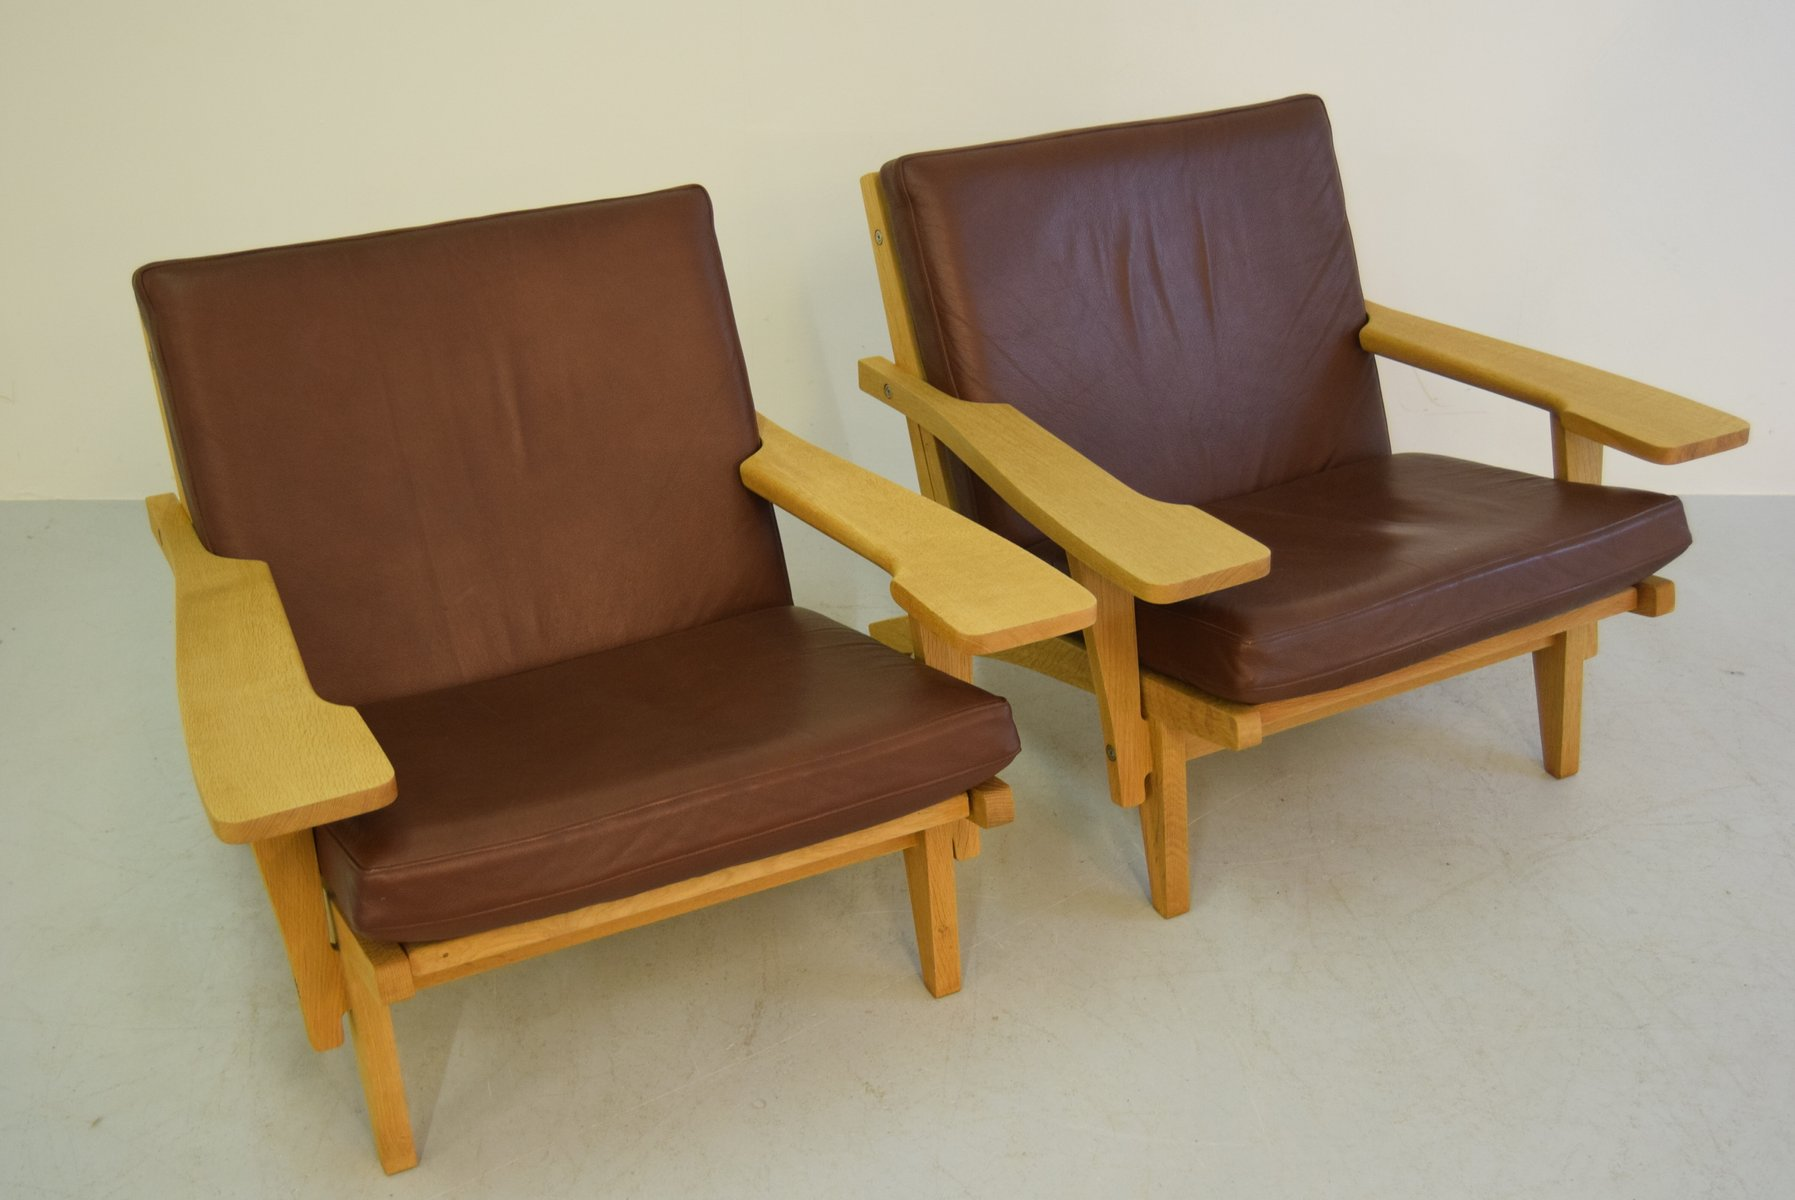 Easy Chairs Model GE 375 by Hans J Wegner for Getama 1960s for